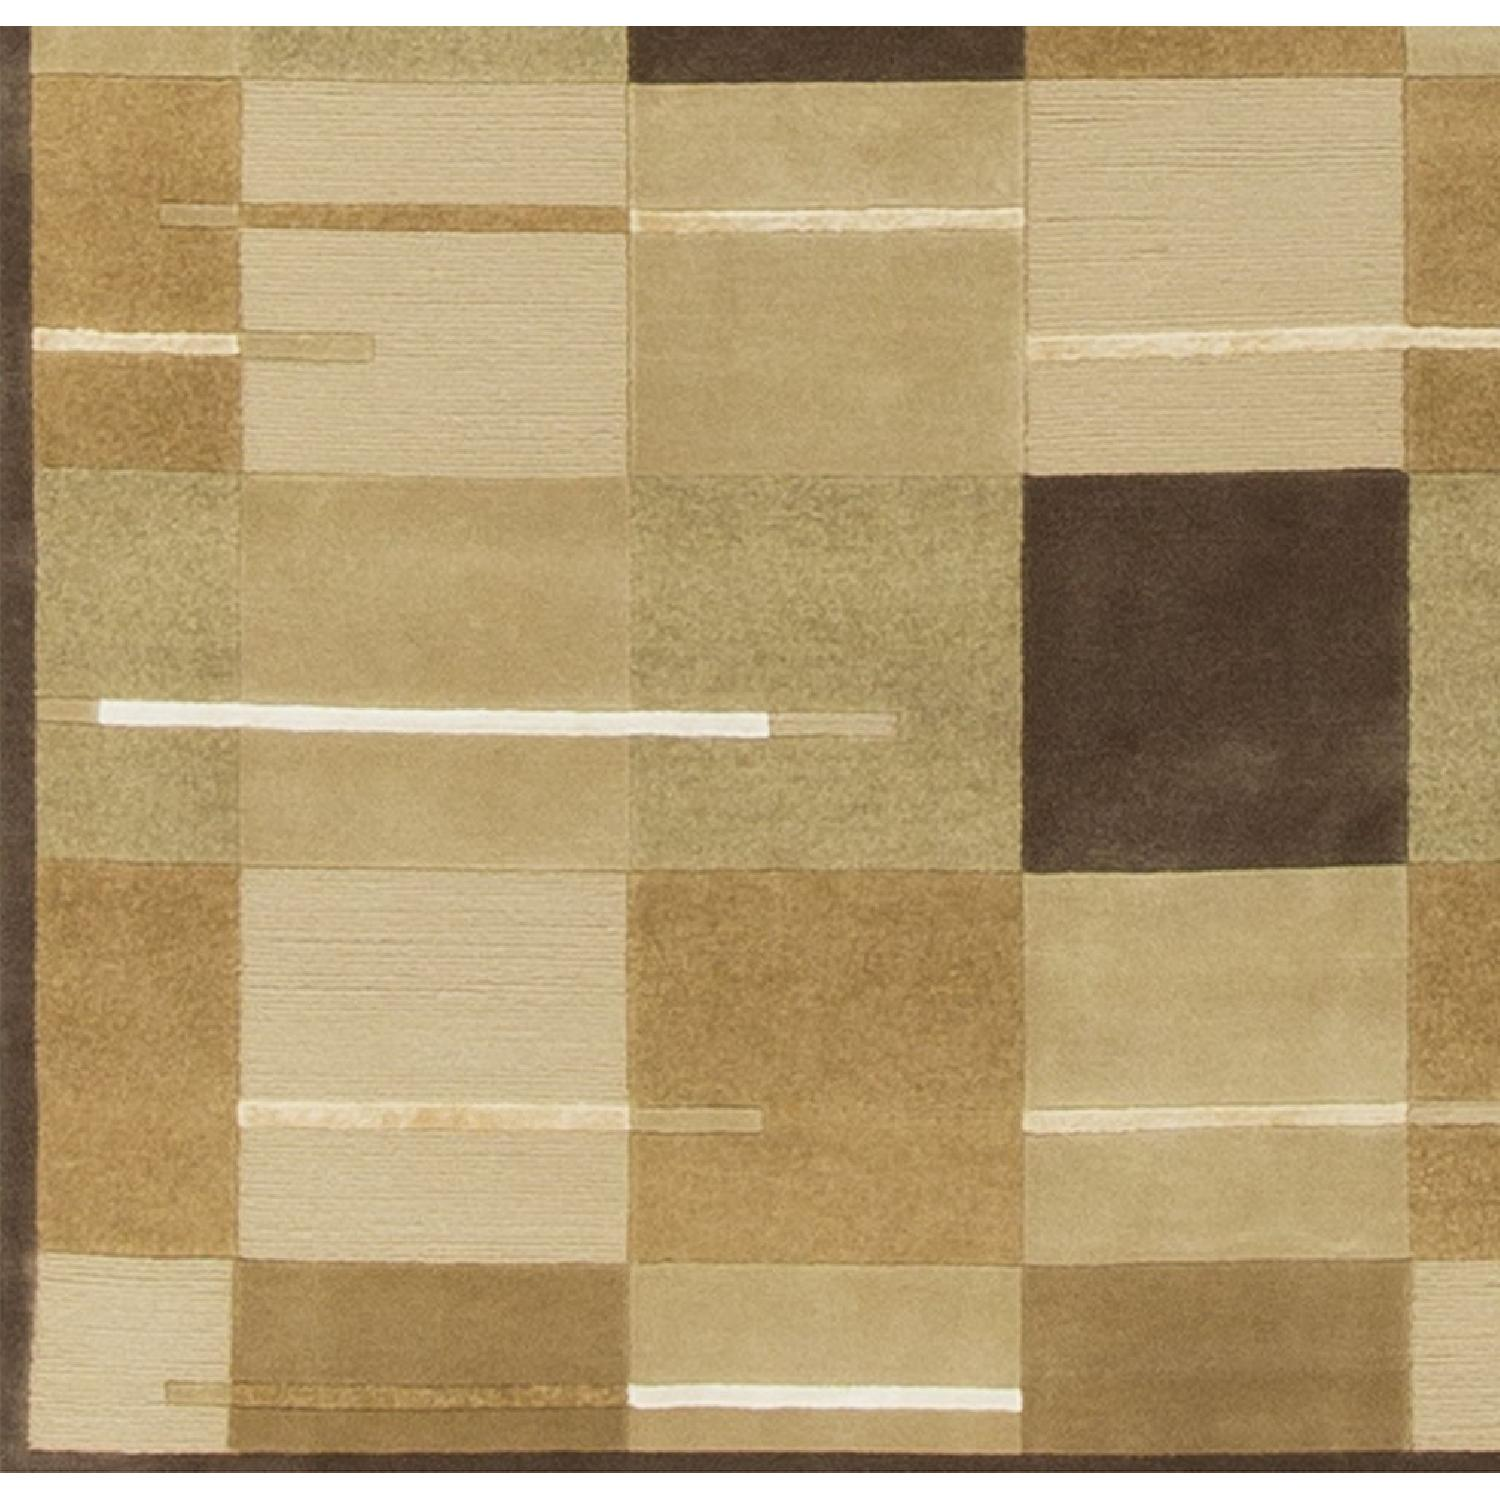 Modern Contemporary Hand Knotted Wool Rug in Beige/Brown/White/Multi - image-3